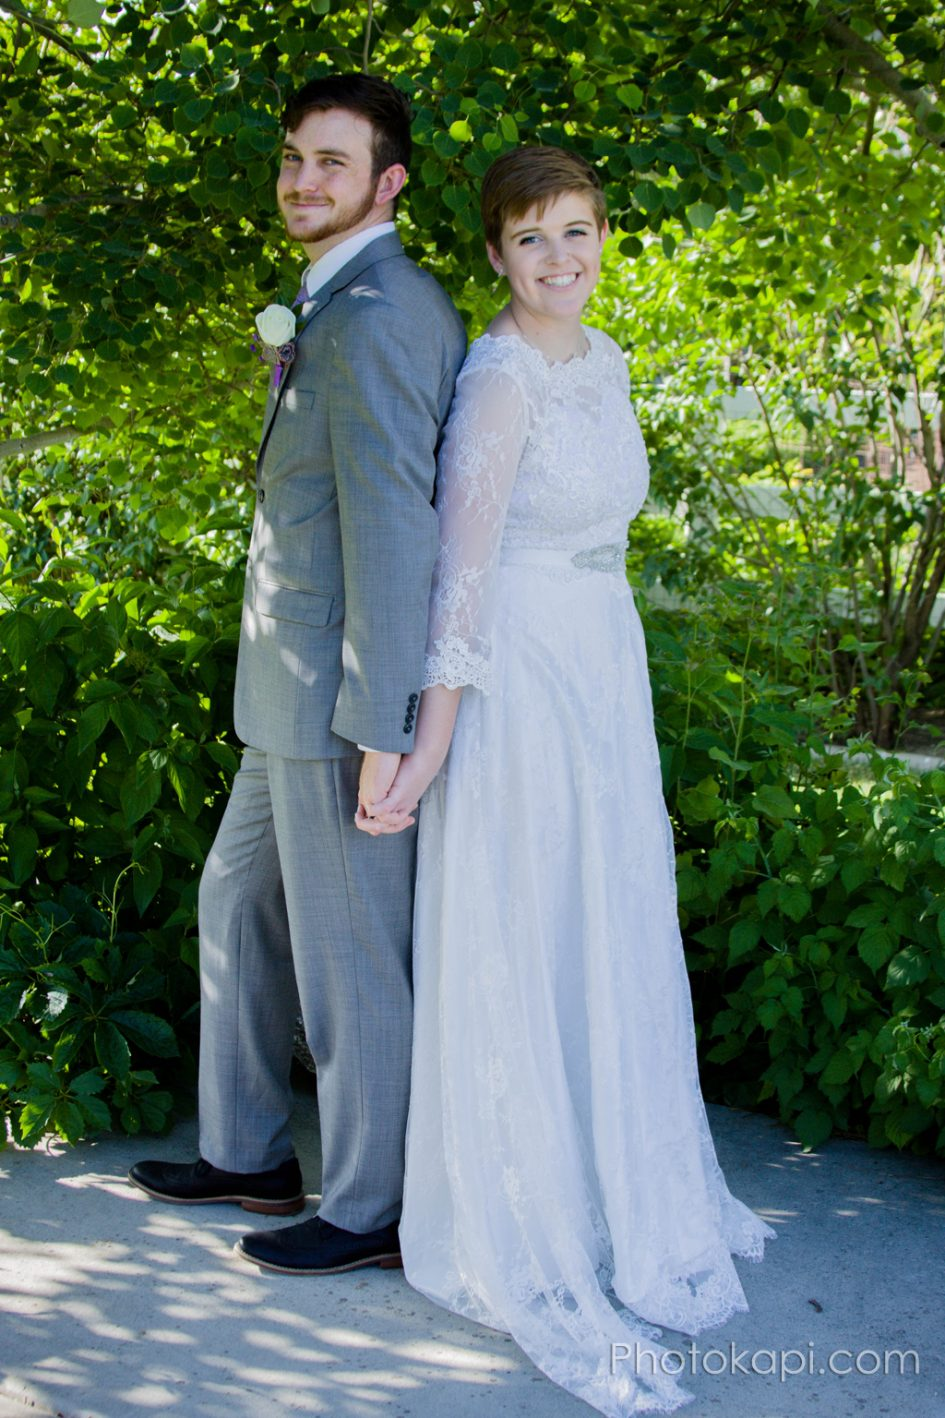 Rachel and Jake Wedding - Photokapi.com